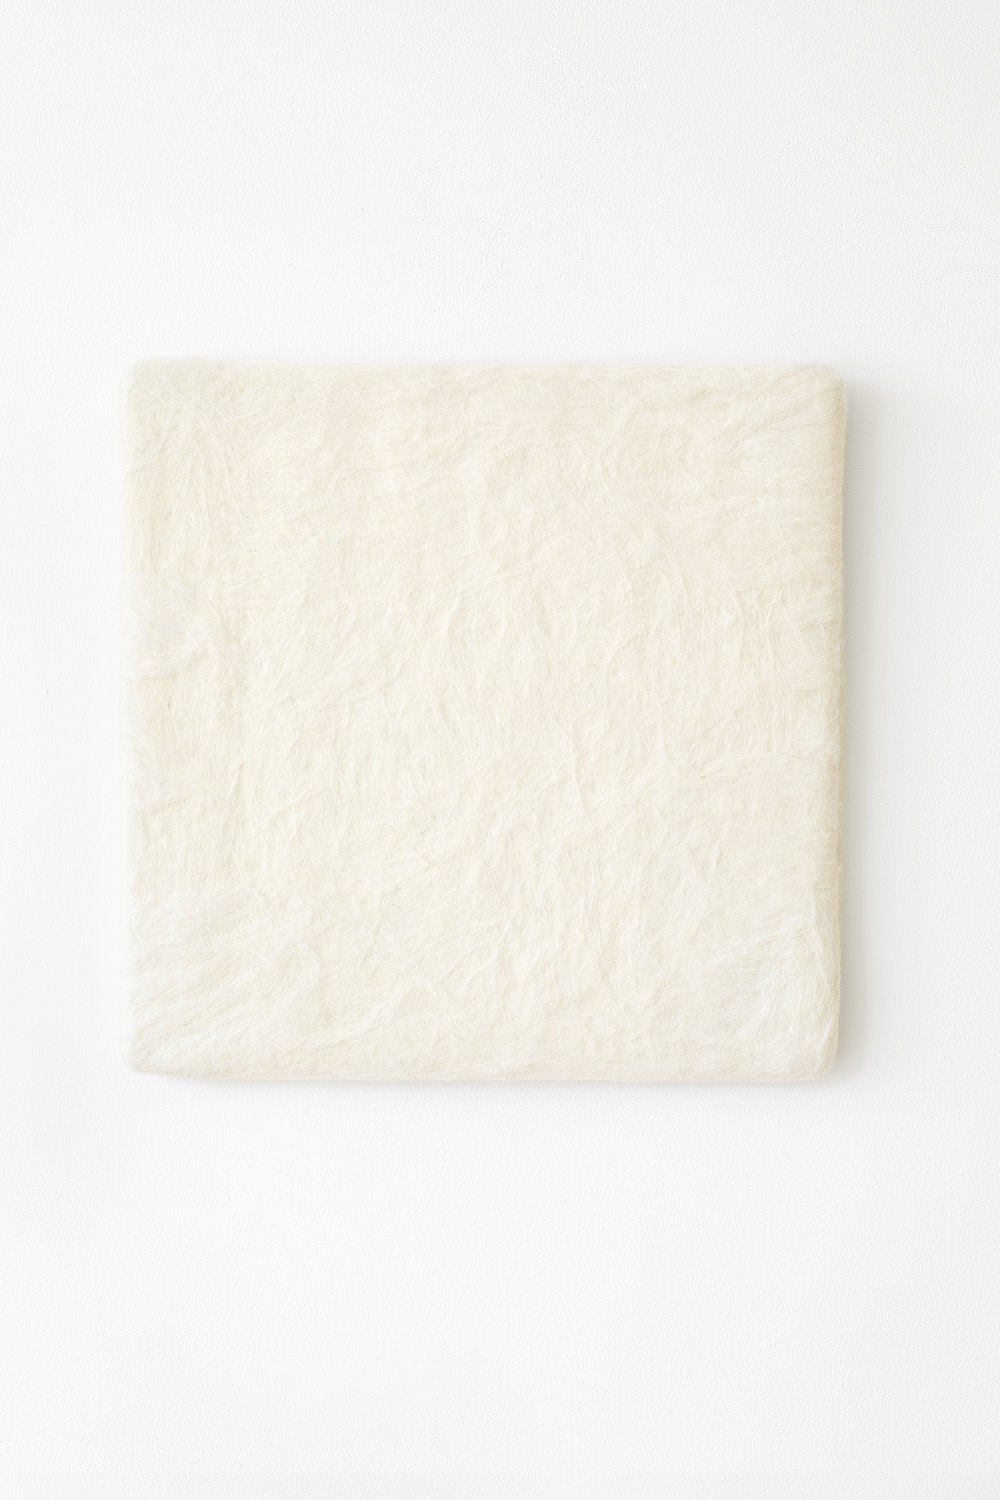 Manuela Garcia ,  White Felt , 2017, wool and wood